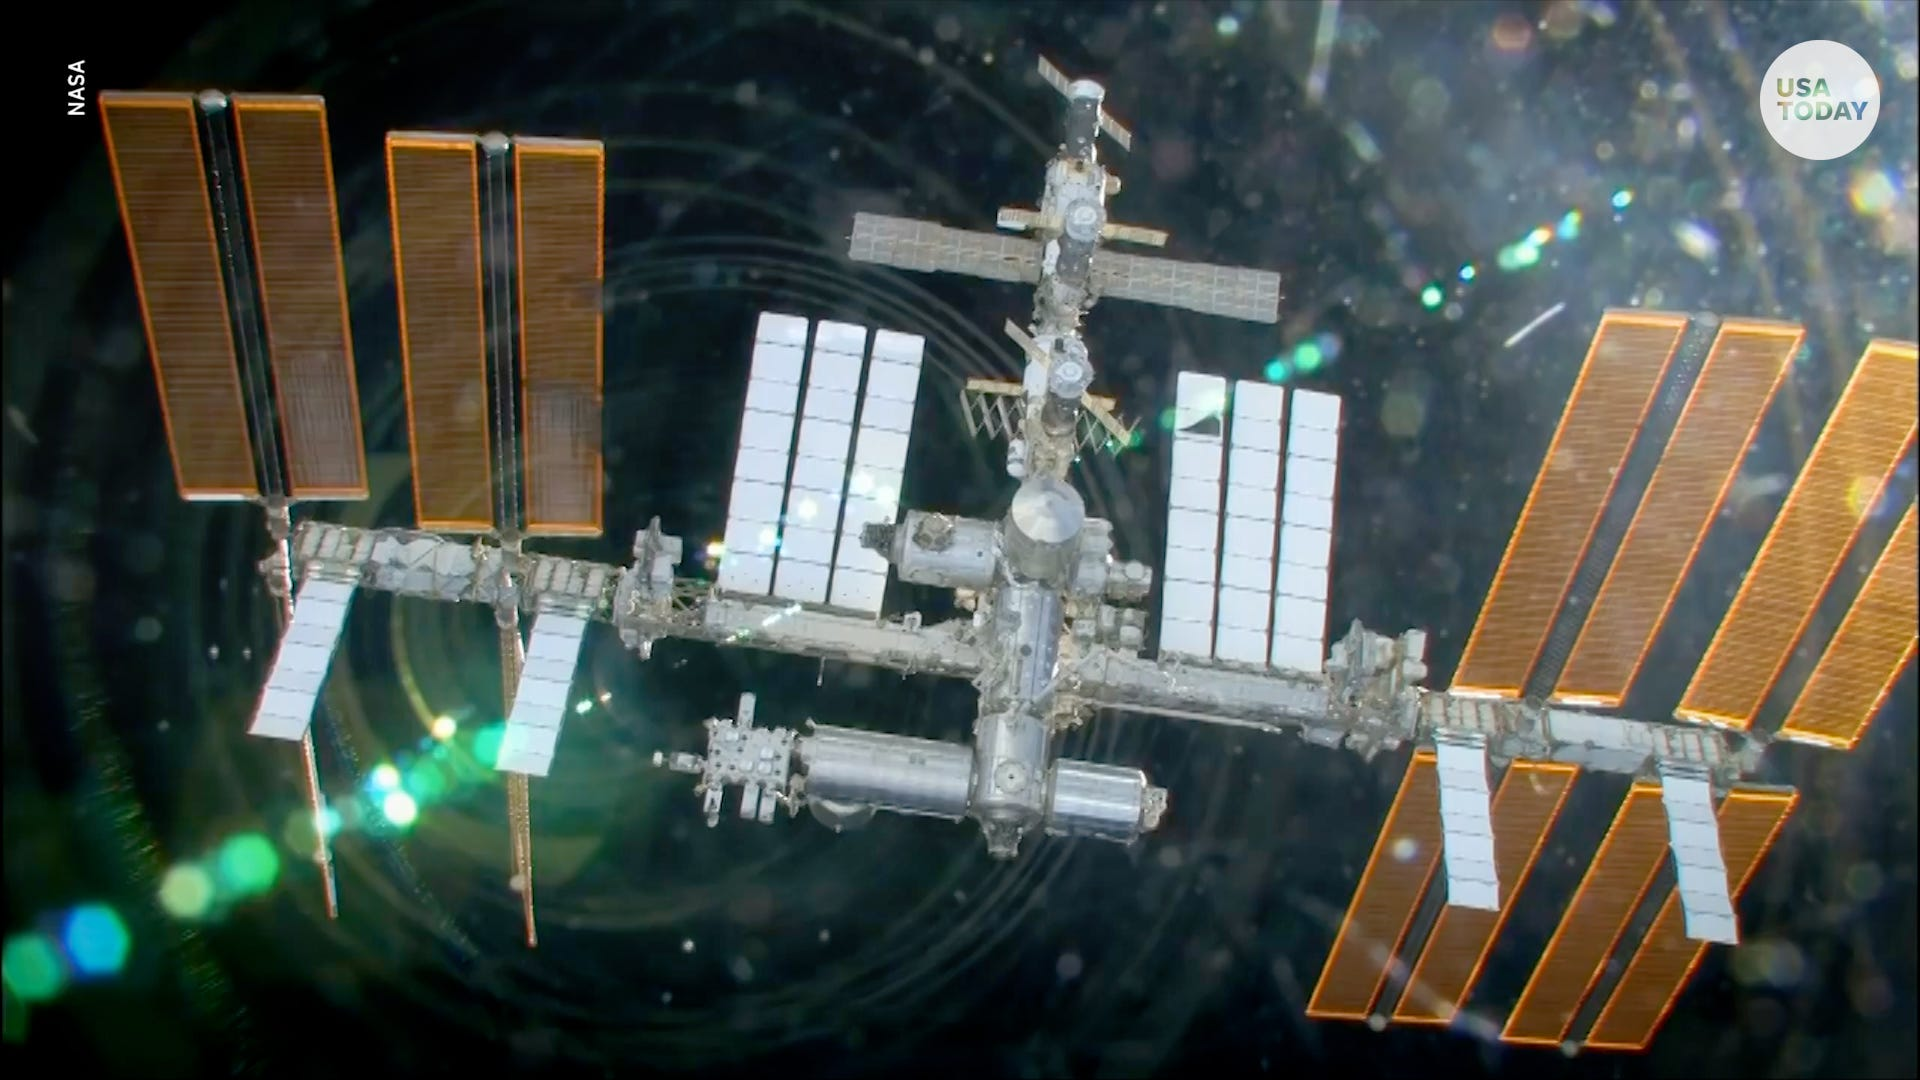 Space debris rips holes into the International Space Station